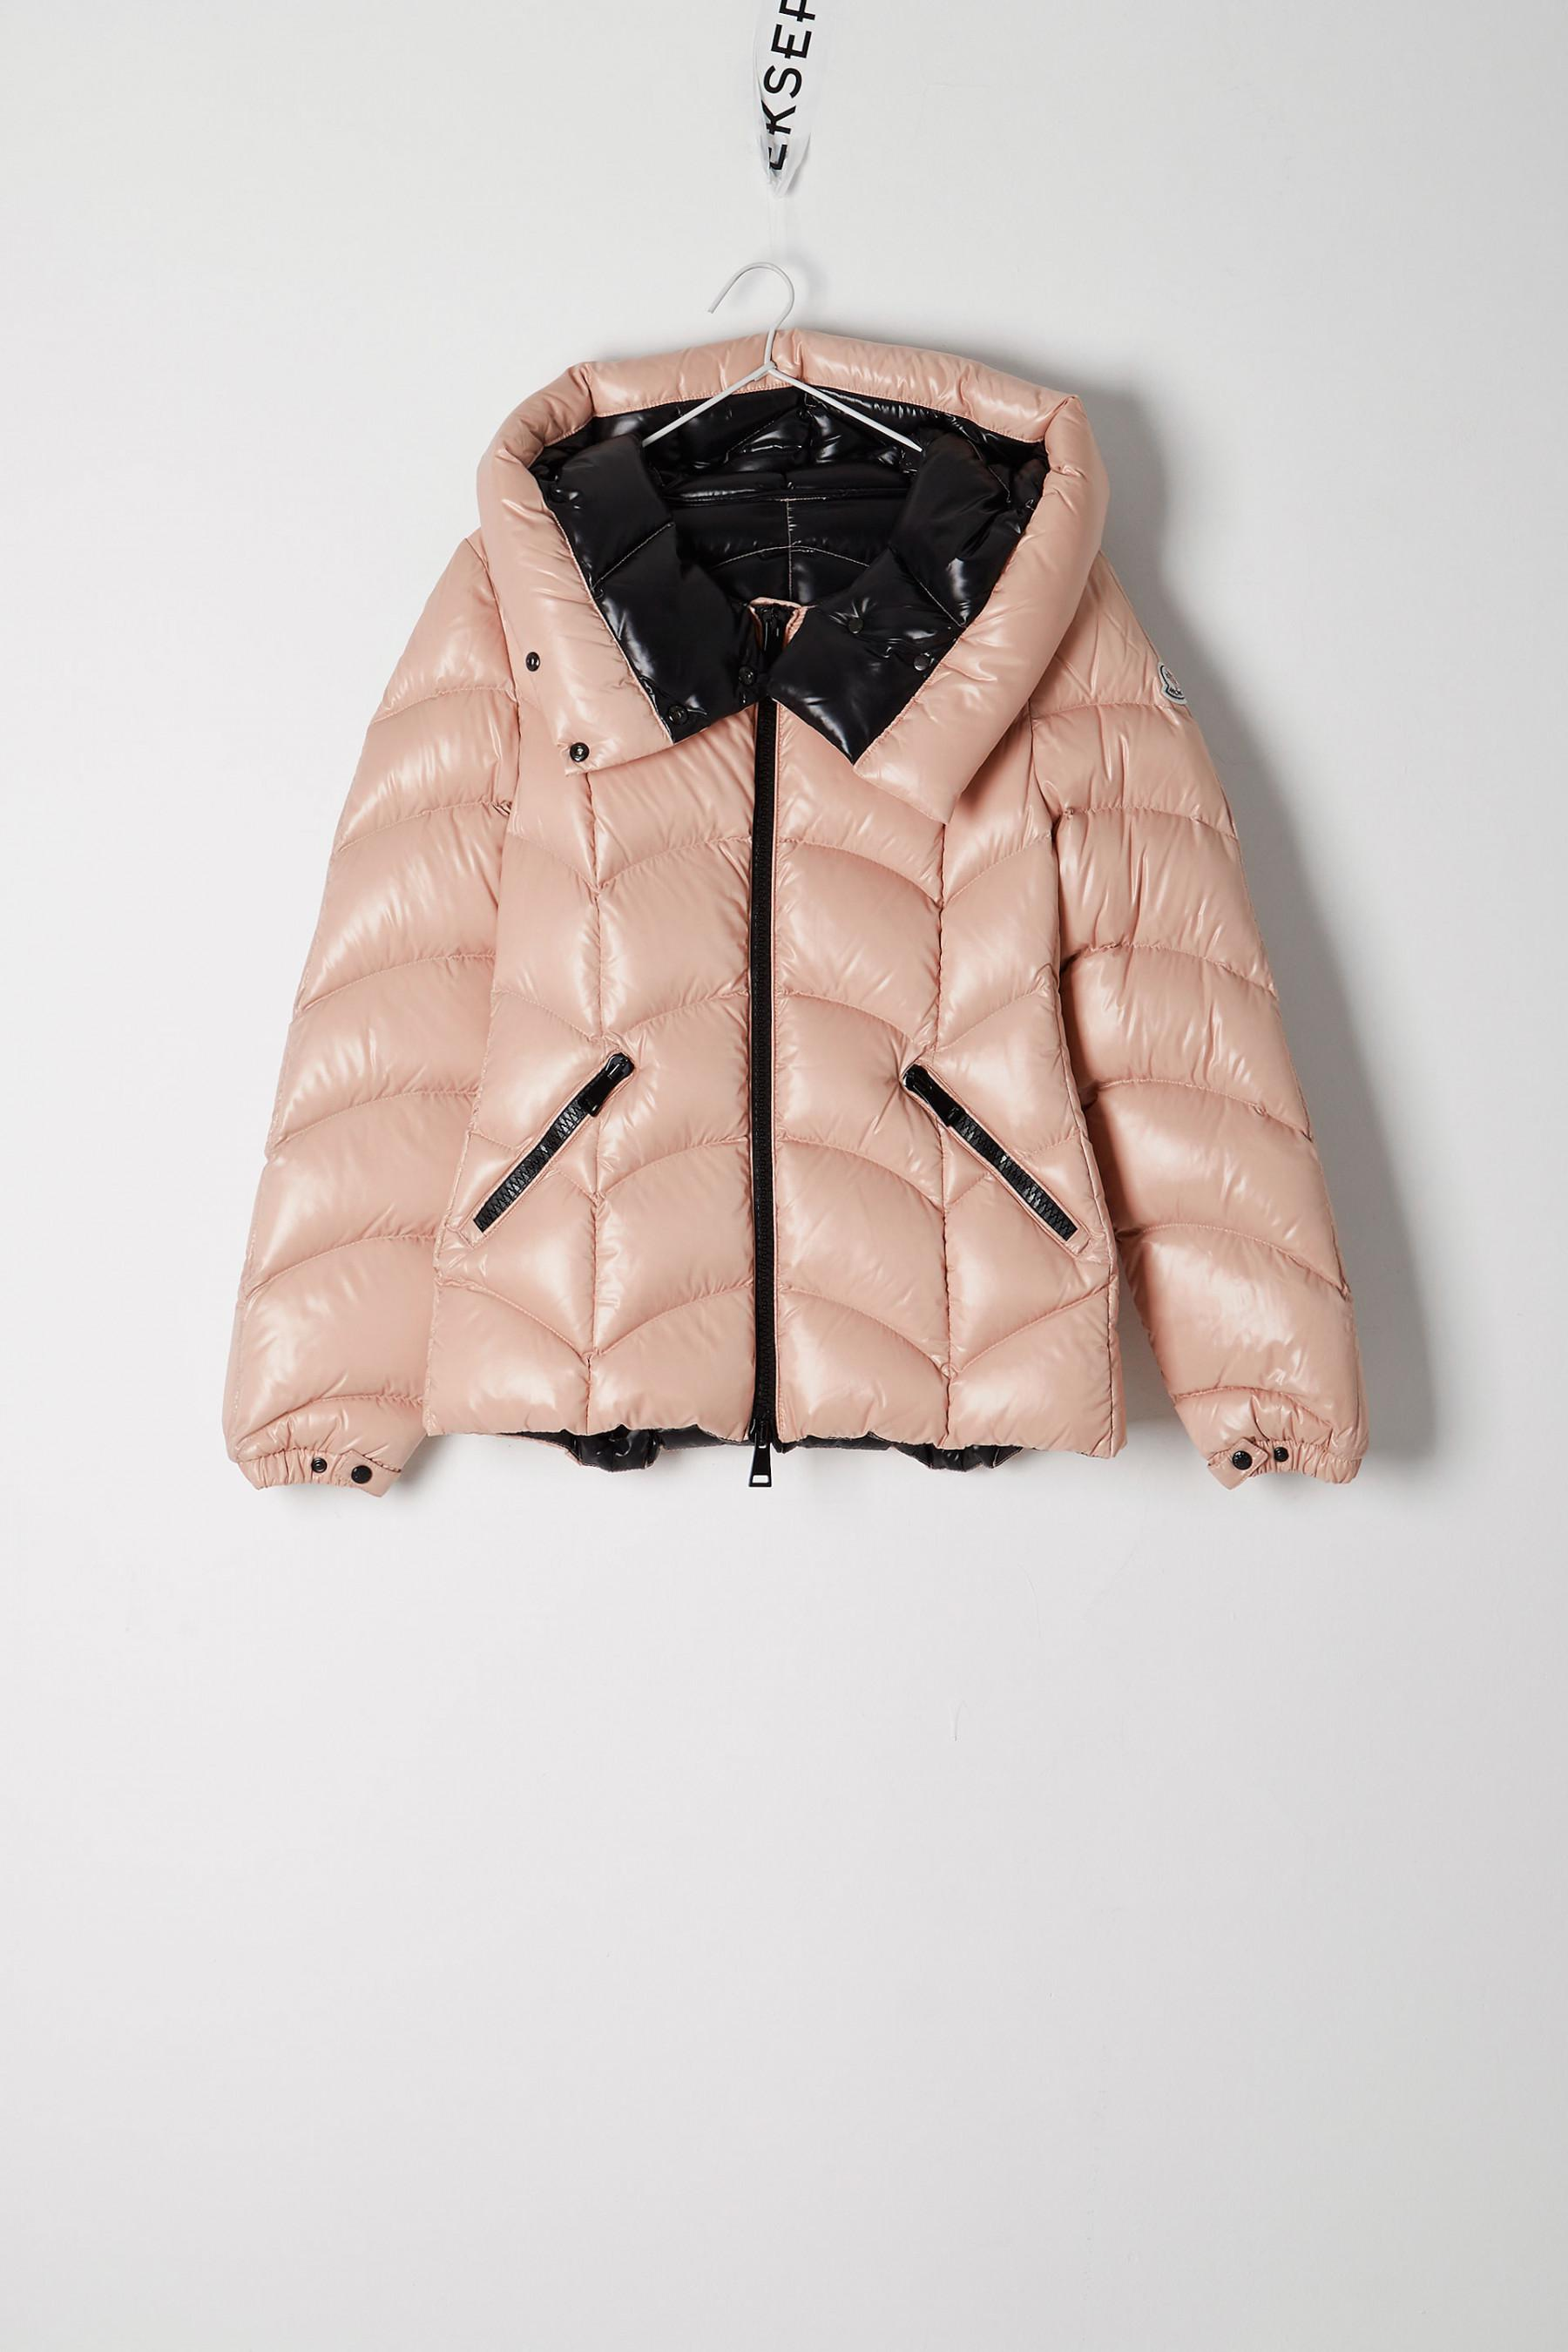 8030f53a6 switzerland moncler jacket akebia thera bff62 ad10c